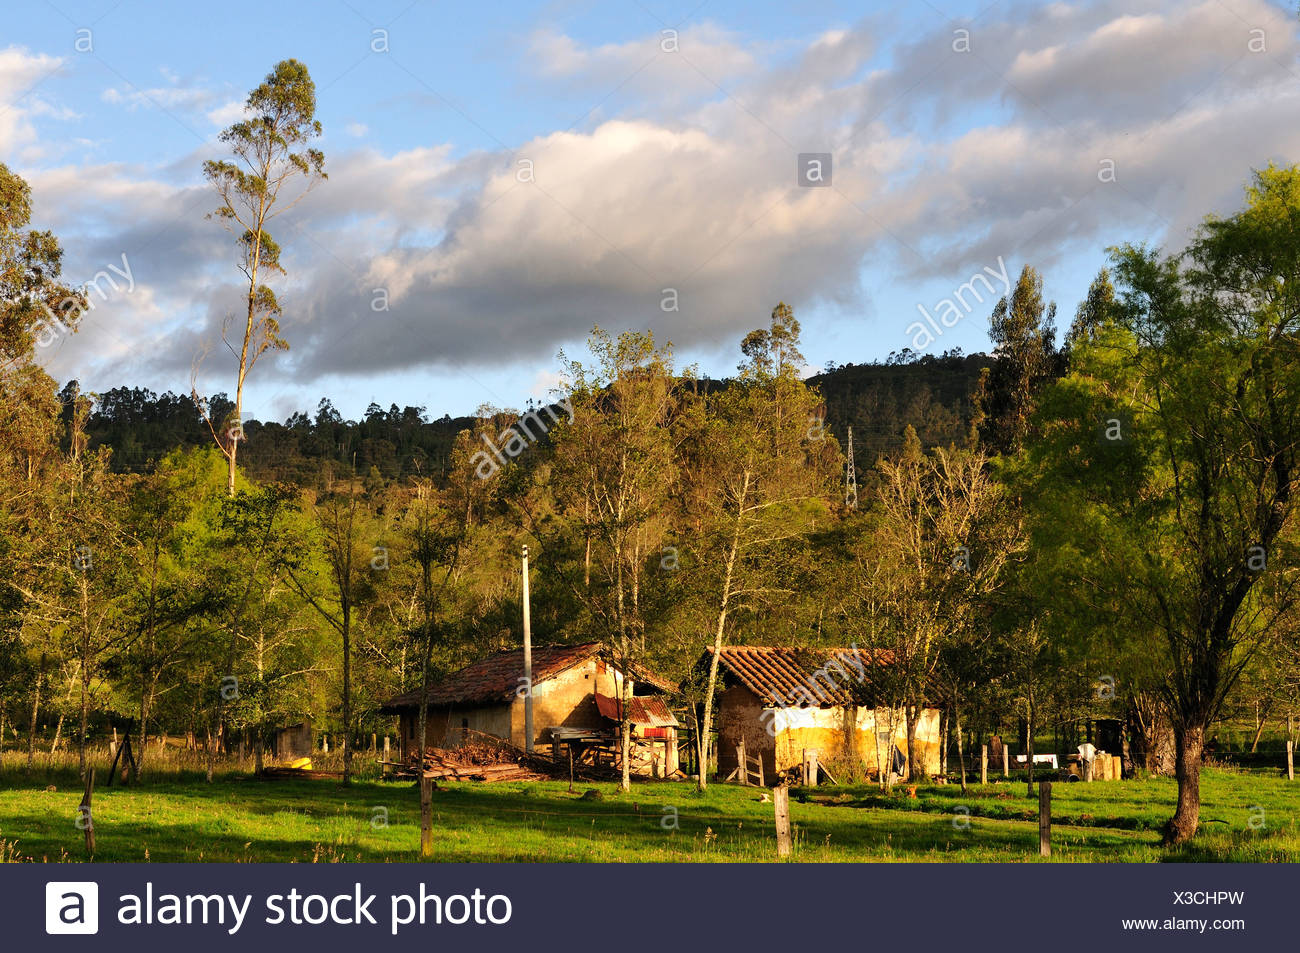 Andes, farmhouses, rural, Landscape, Zipaquira, Colombia, South America - Stock Image